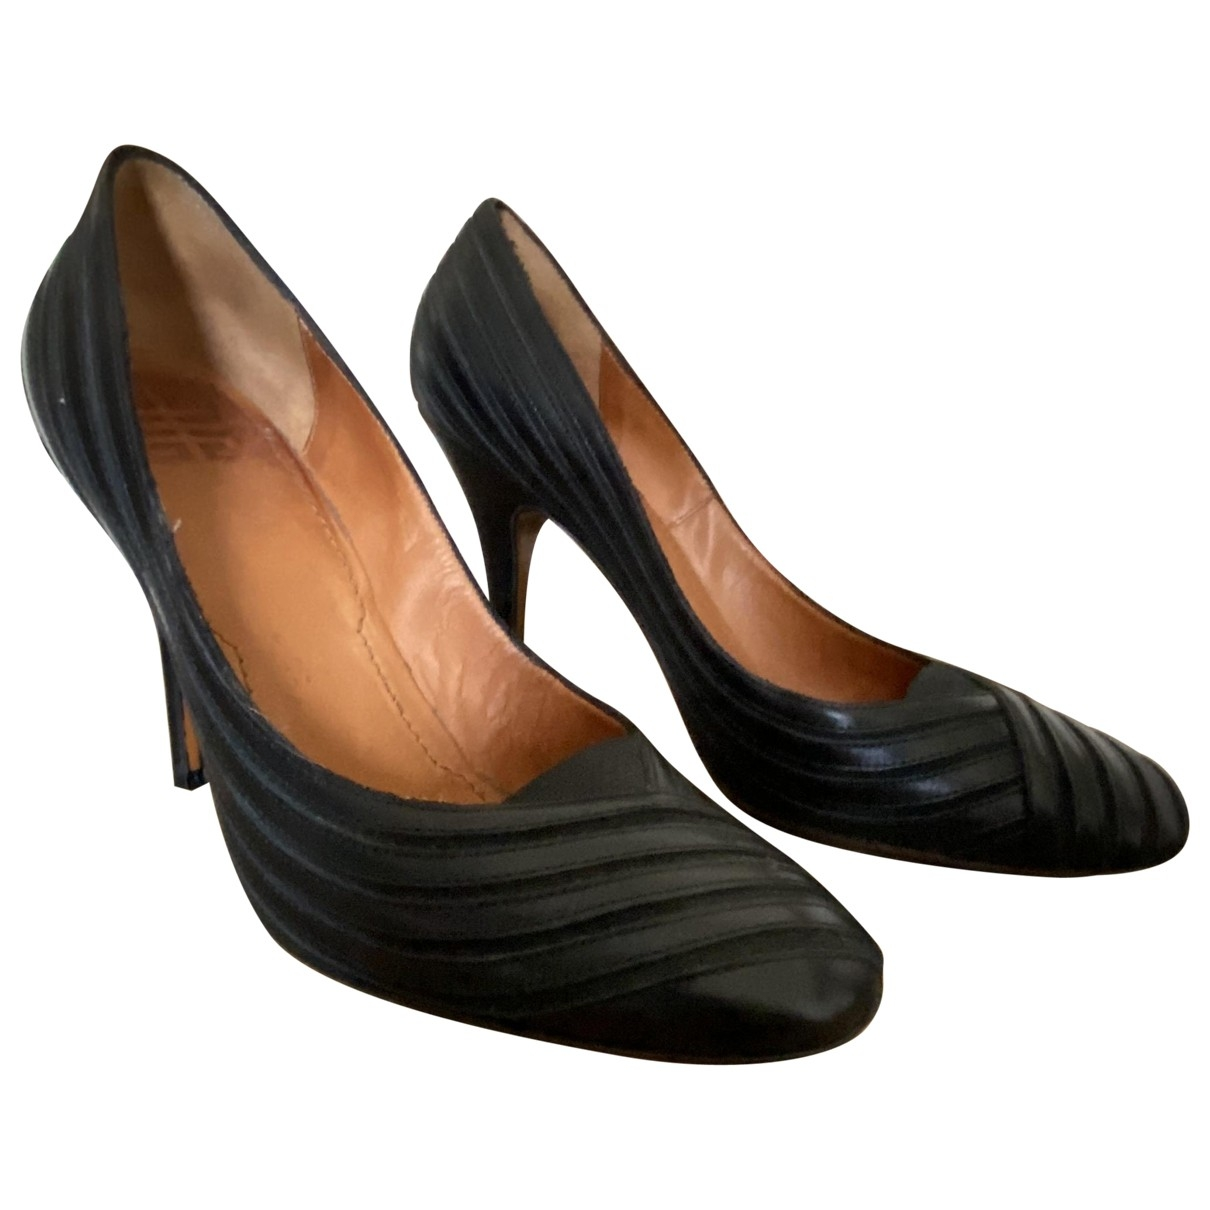 Givenchy \N Black Leather Heels for Women 39 EU